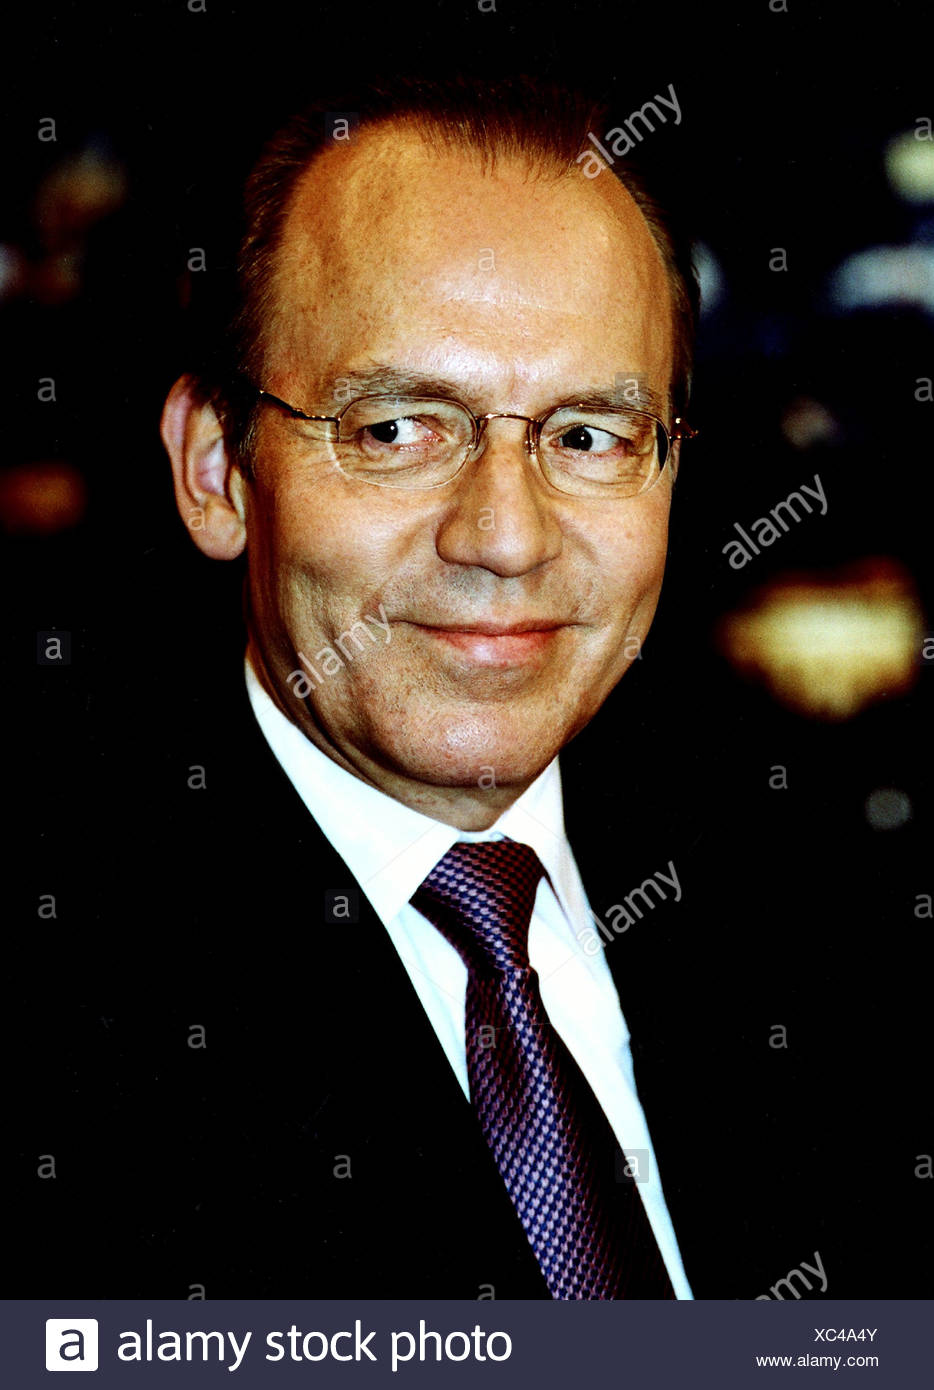 Gerster, Florian, * 7.5.1949, German politician (SPD), portrait, 2002, Additional-Rights-Clearances-NA - Stock Image